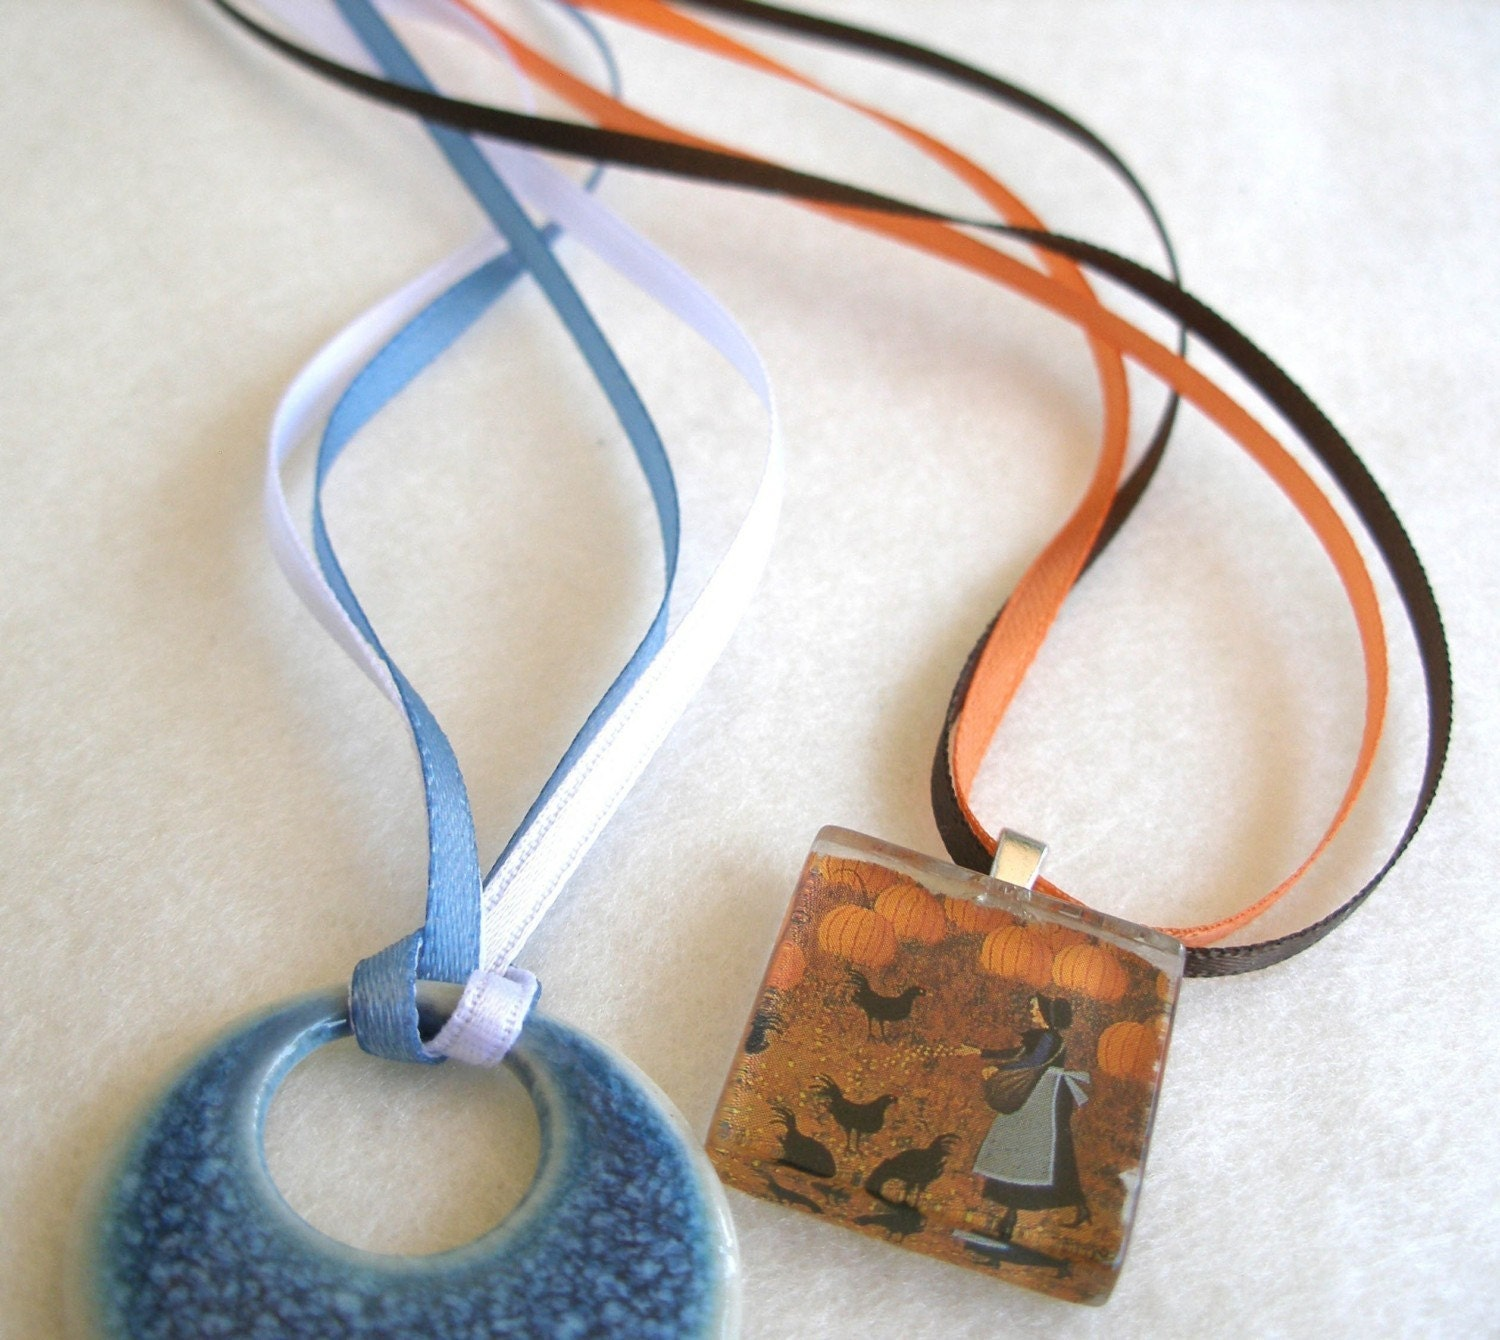 12 - Necklace Cords Double Strand Satin Any Length, 21 Colors use with Scrabble/Glass Tile Pendants and all Aanraku bails.